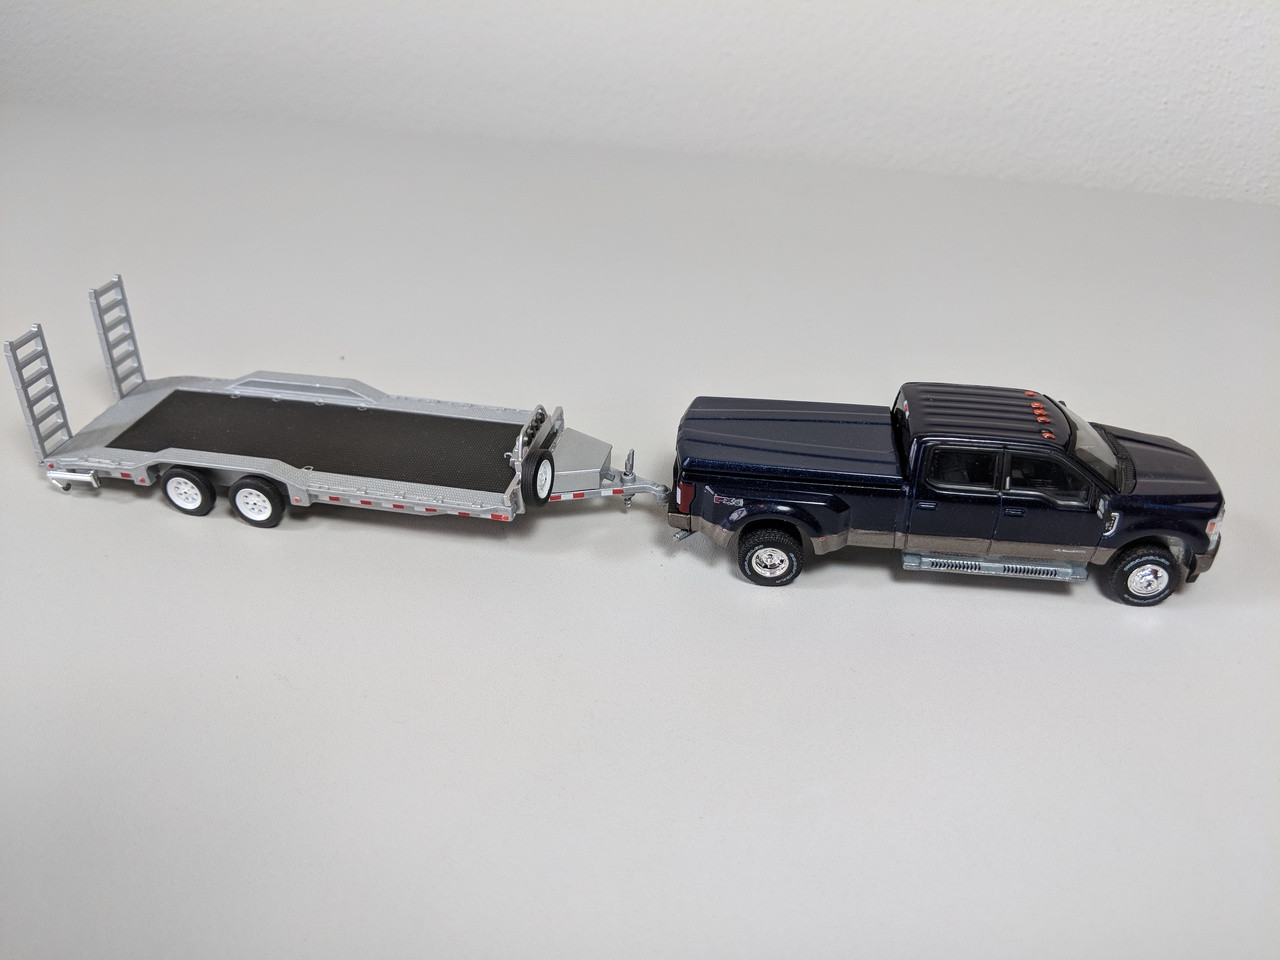 1 64 Hitch Tow 2018 Ford F 350 King Ranch Dually Blue Jeans Upper With Stone Gray Lower Accent And Hd Flat Bed Trailer Town And Country Toys